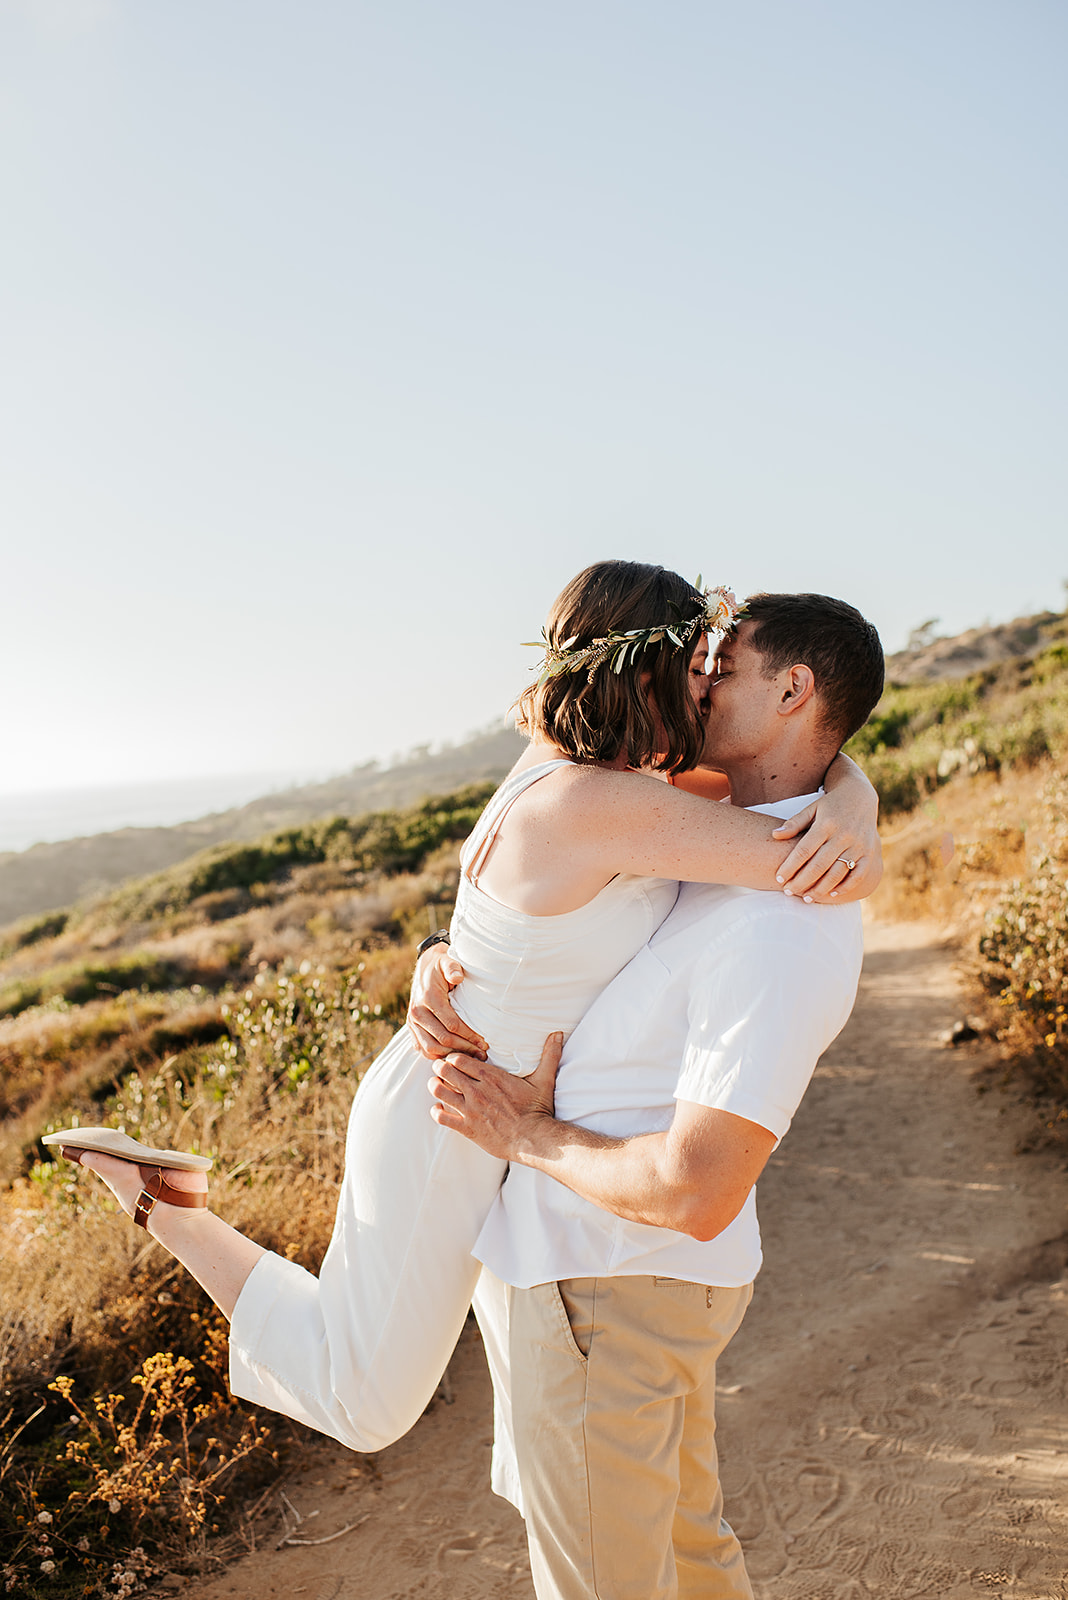 SoCal_Standard_-_San_Diego_Engagement_Photographer_-_Modern_Candid_Destination_Photographer_-_Engagement_Session_at_Torrey_Pines_San_Diego_California_-_Grace_and_Robert-60.jpg